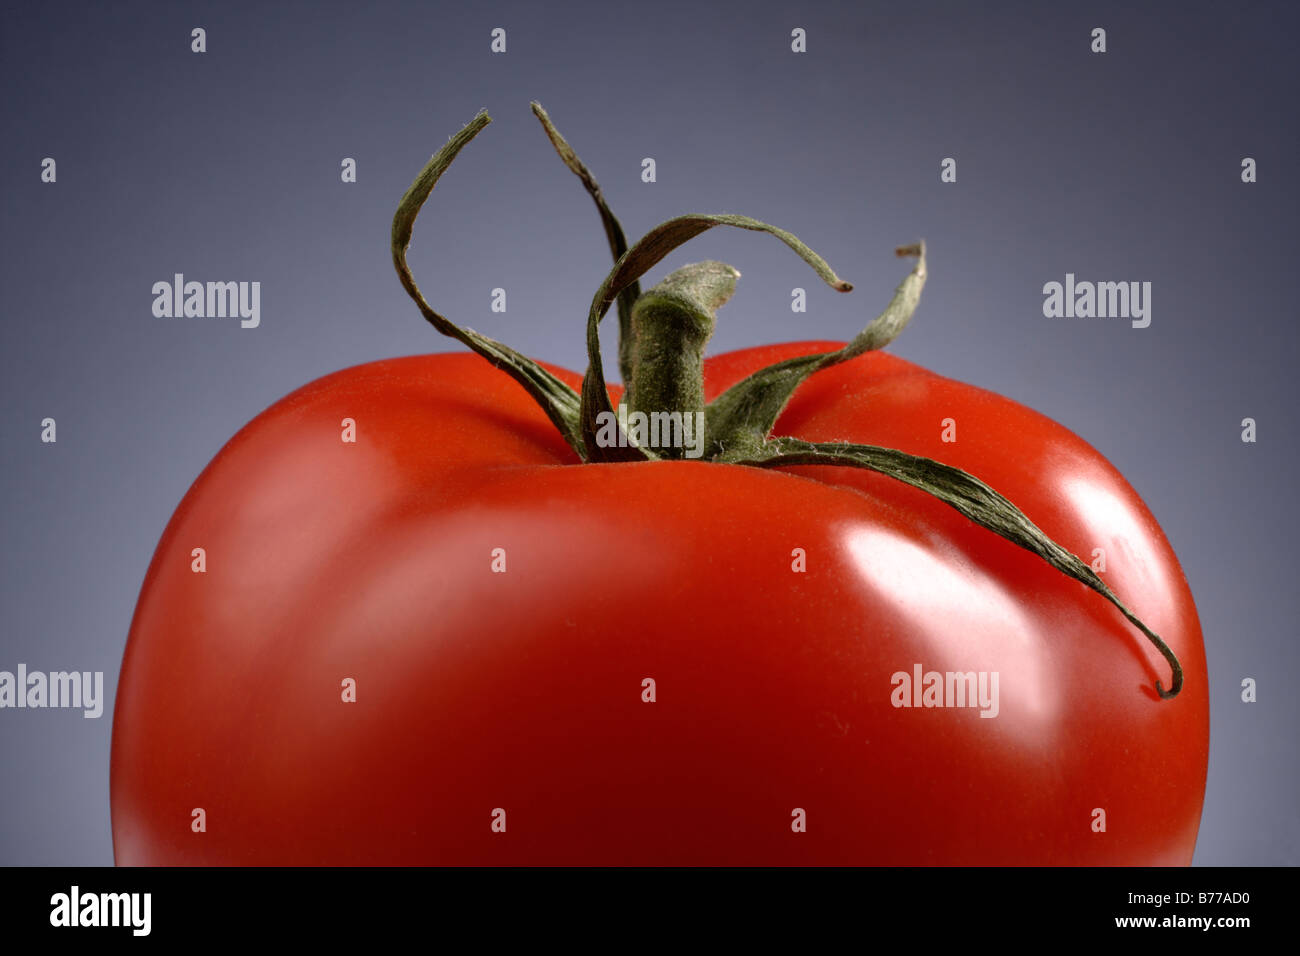 Tomato detail Vegetables tomato red bitter cucumber Lycopersicon esculentum solanum healthy rich in vitamins low - Stock Image